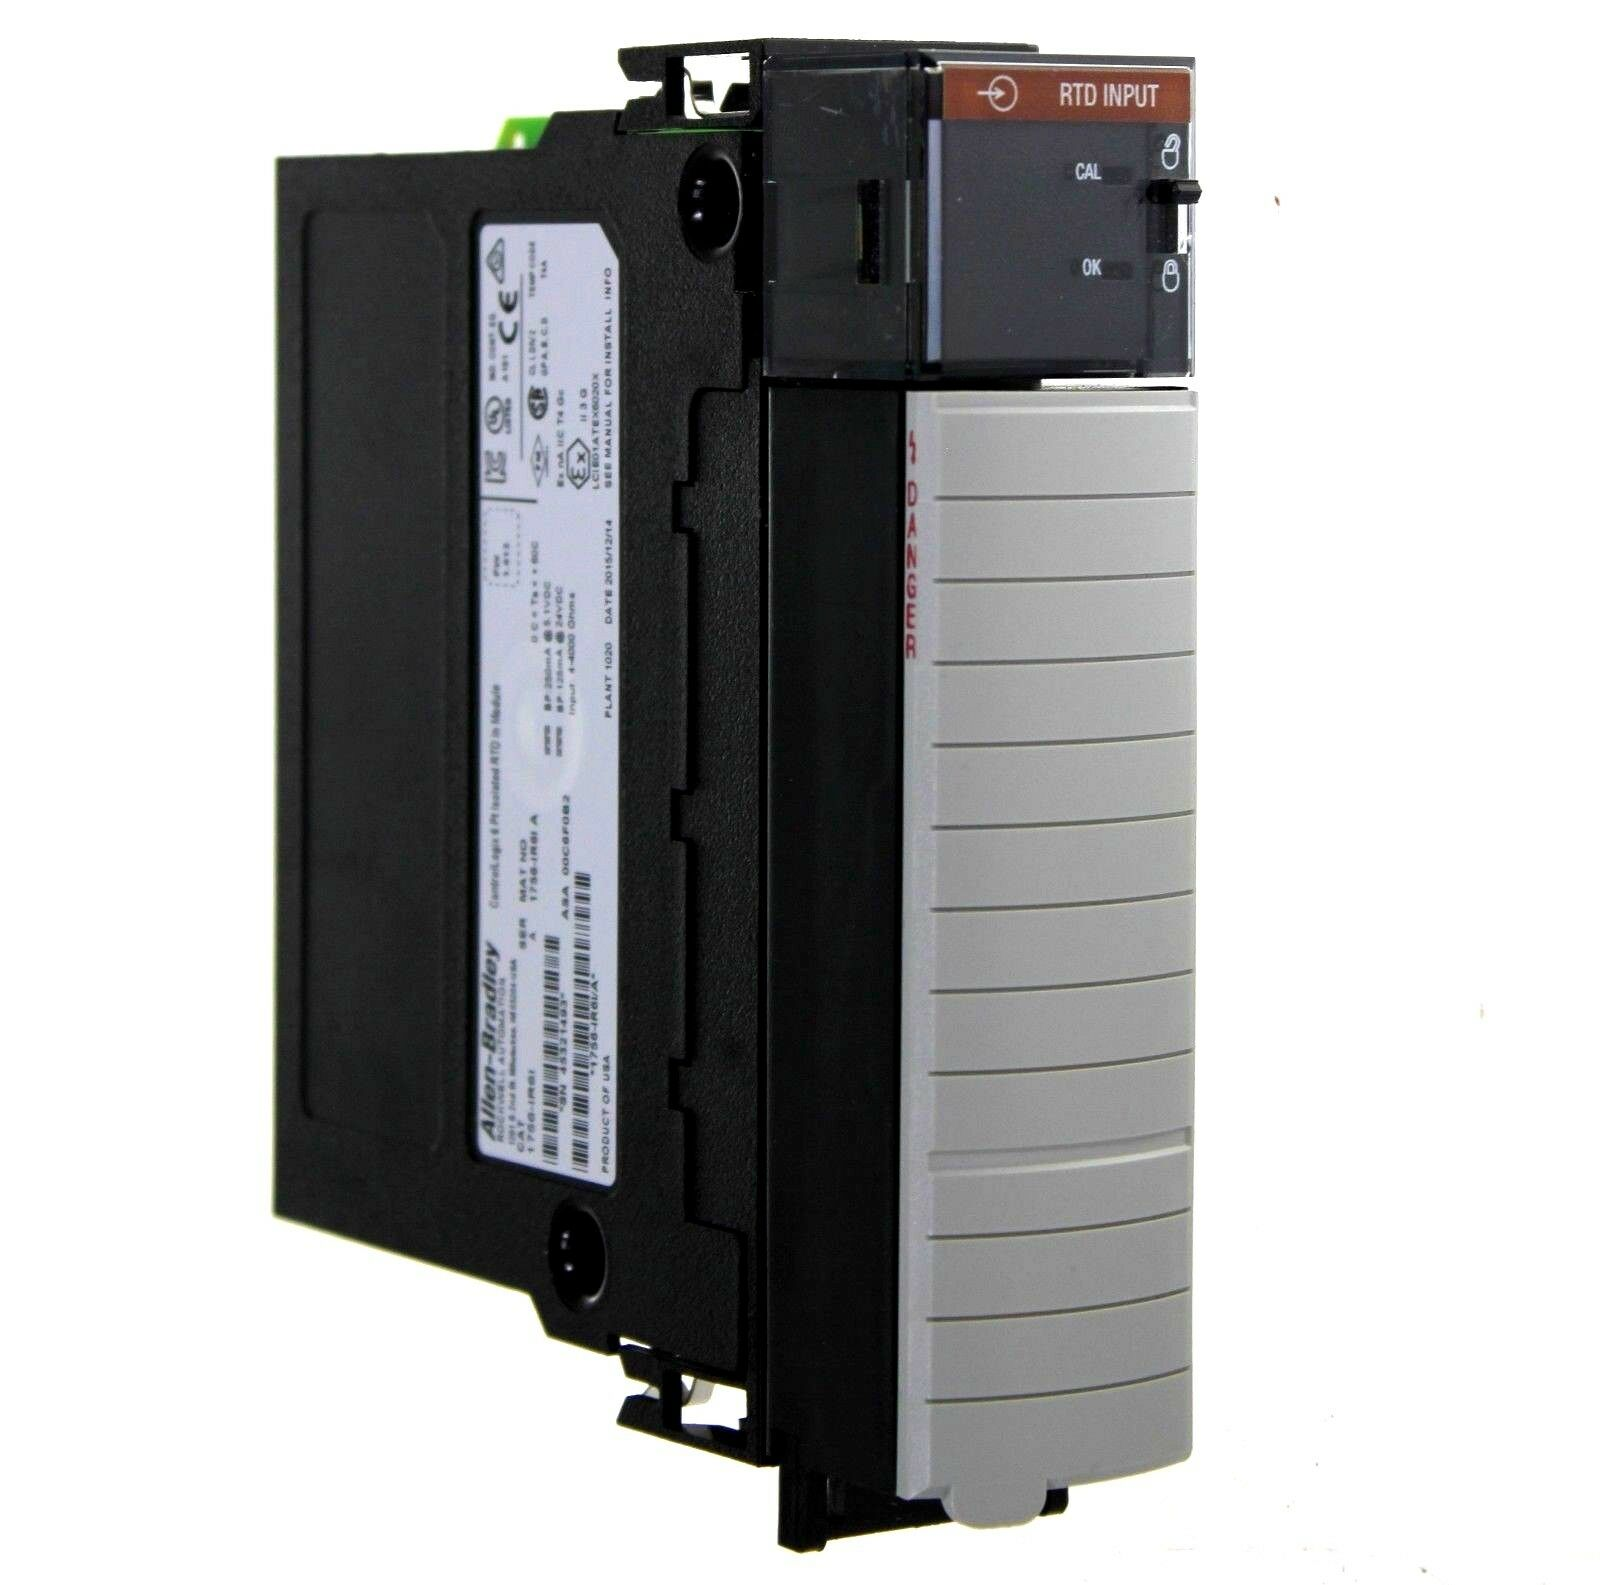 Allen Bradley 1756-IR6I /A ControlLogix 6-Point Isolated RTD Input Module